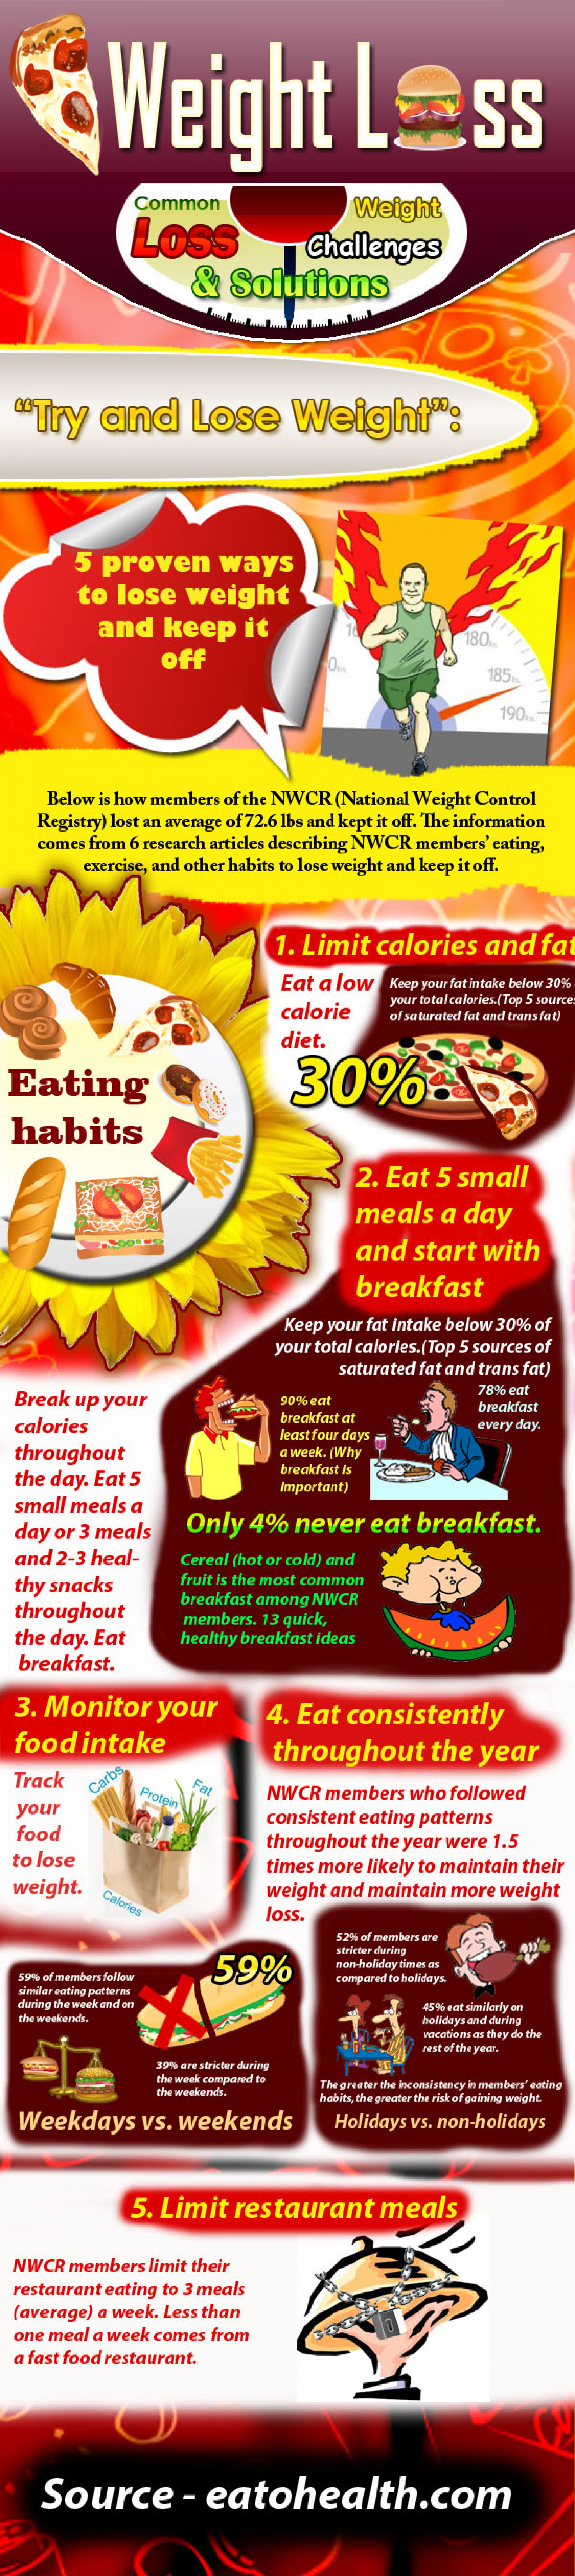 5 Proven Ways To Loose Weight And Keep It Off – An Infographic Infographic